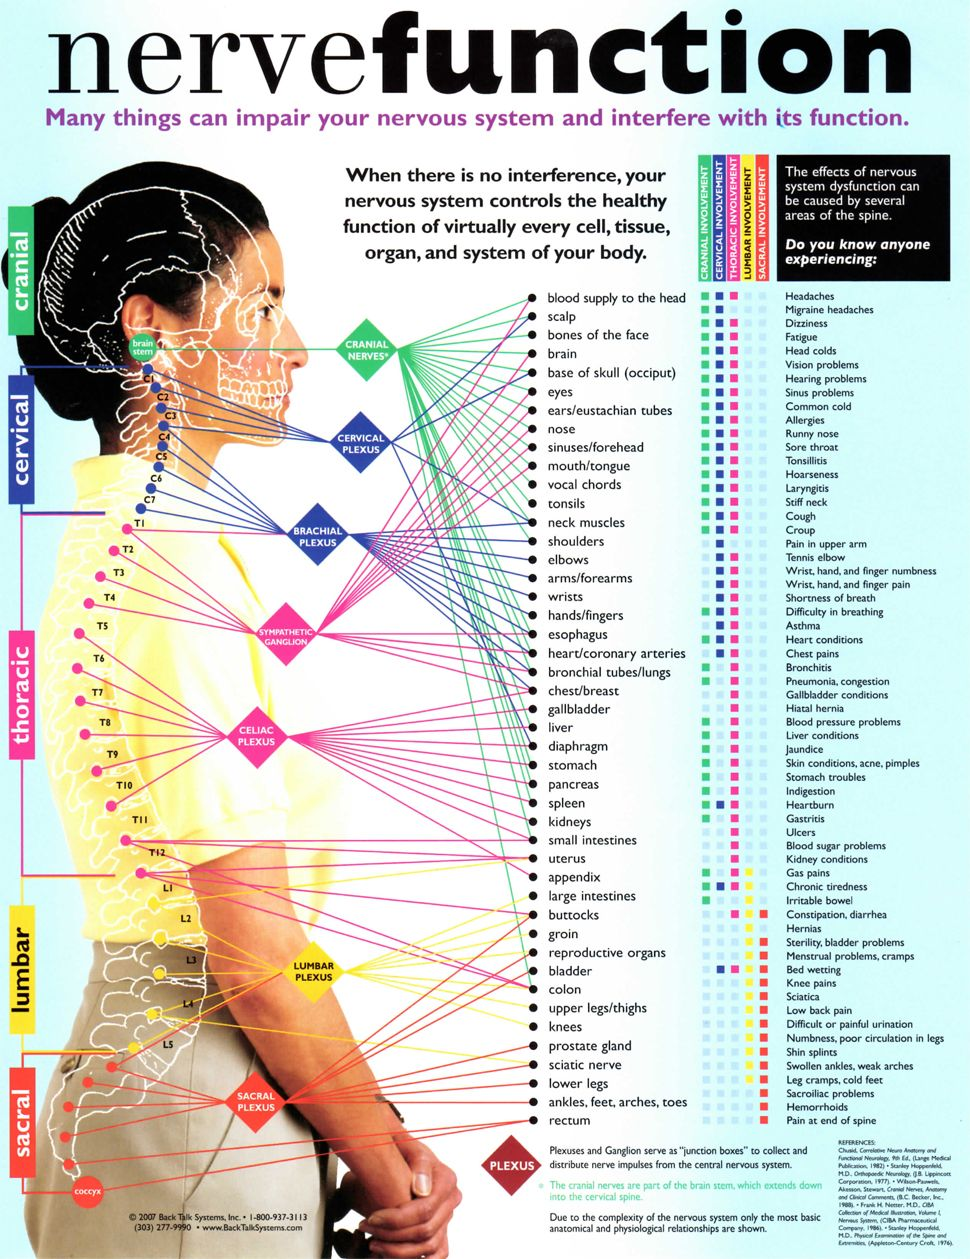 nerve function chart Bloomington, IL Bloomington